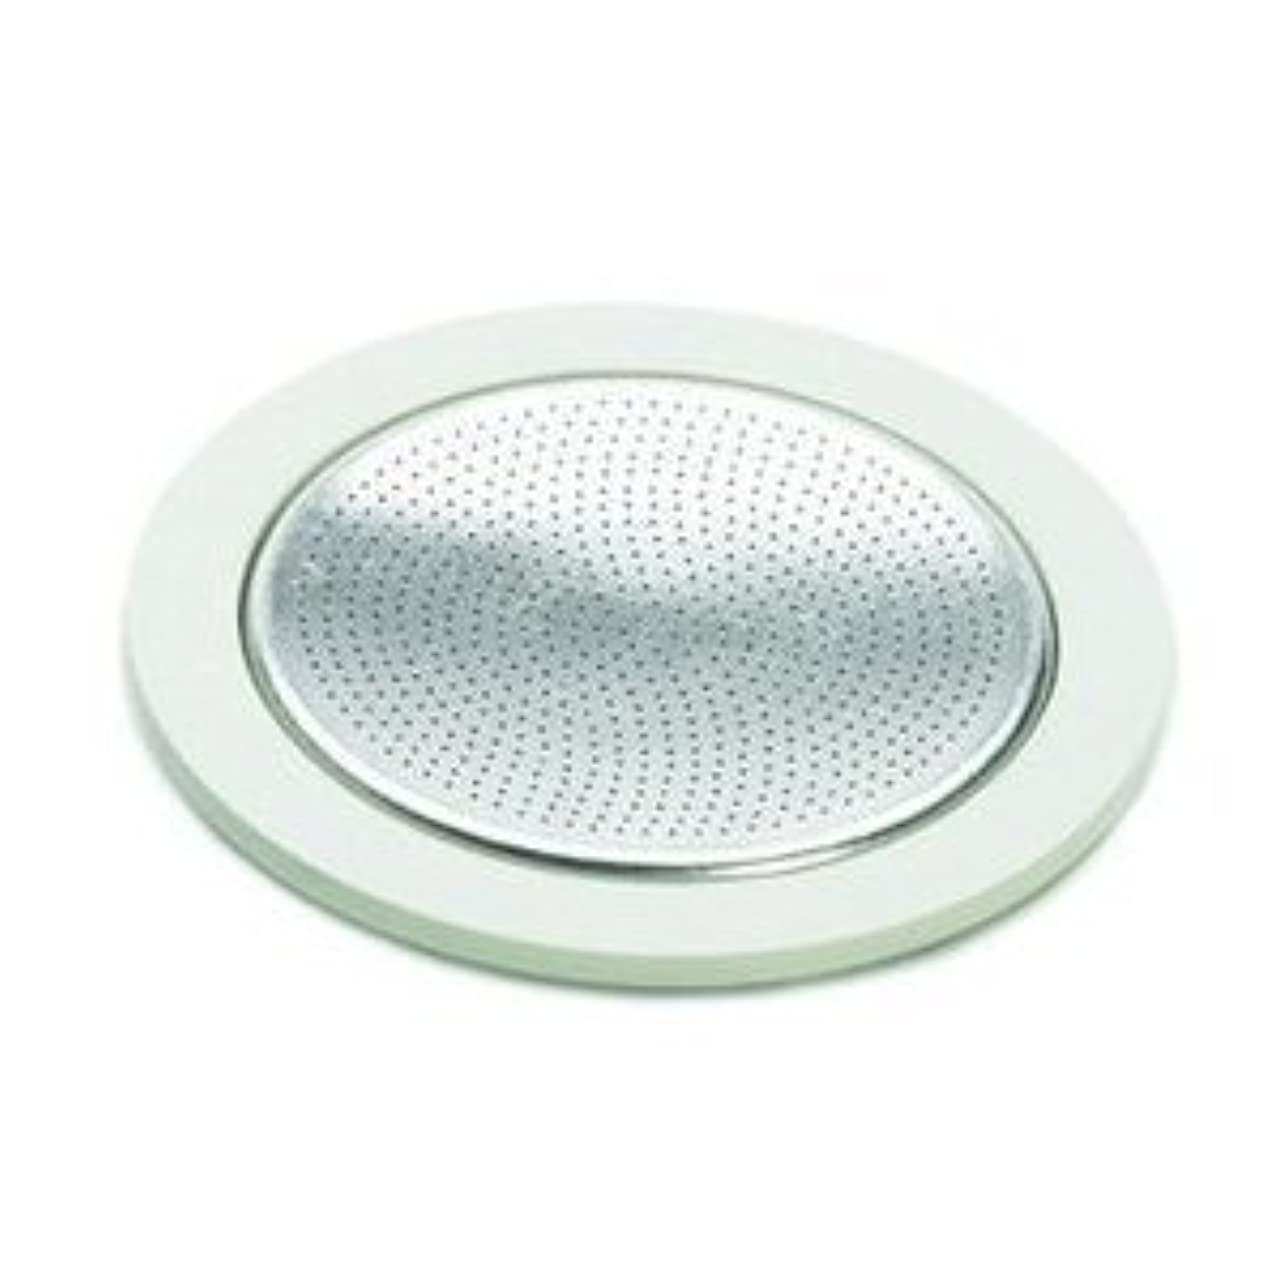 Bialetti 06964 replacement gasket/filter for 12 cup makers. by Bialetti